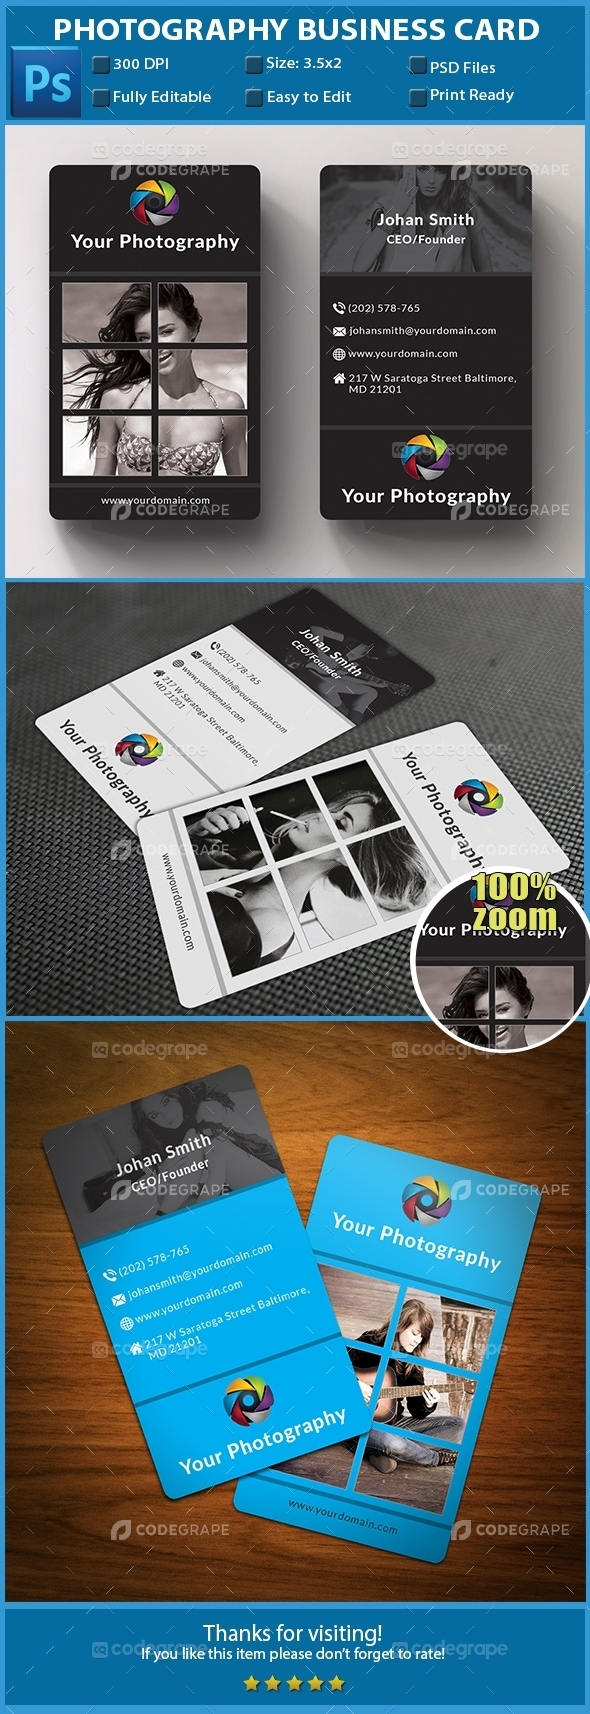 Phootography Business Card